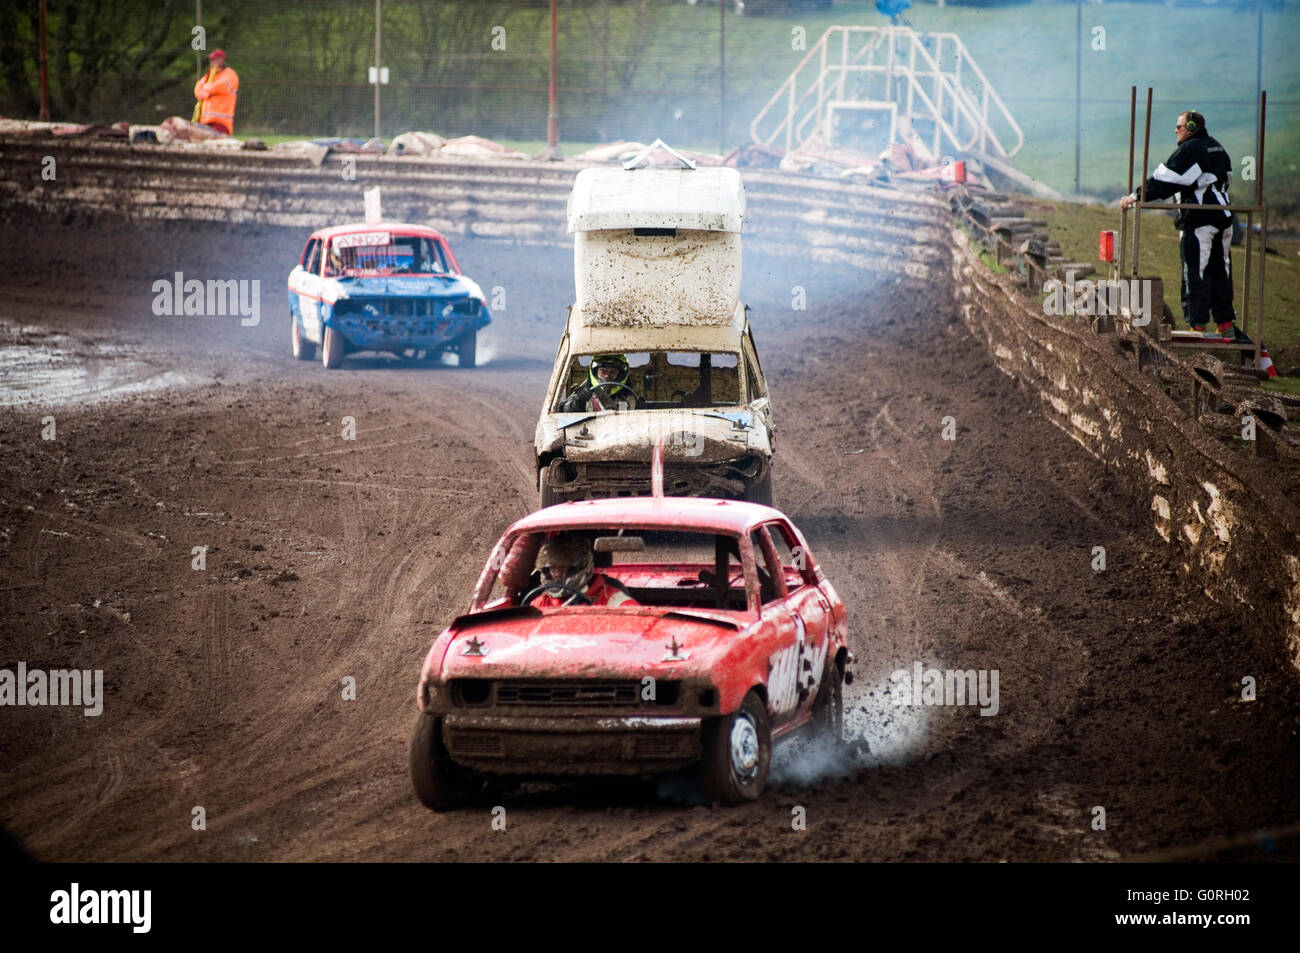 austin allegro and marina being banger raced race races track tracks ...